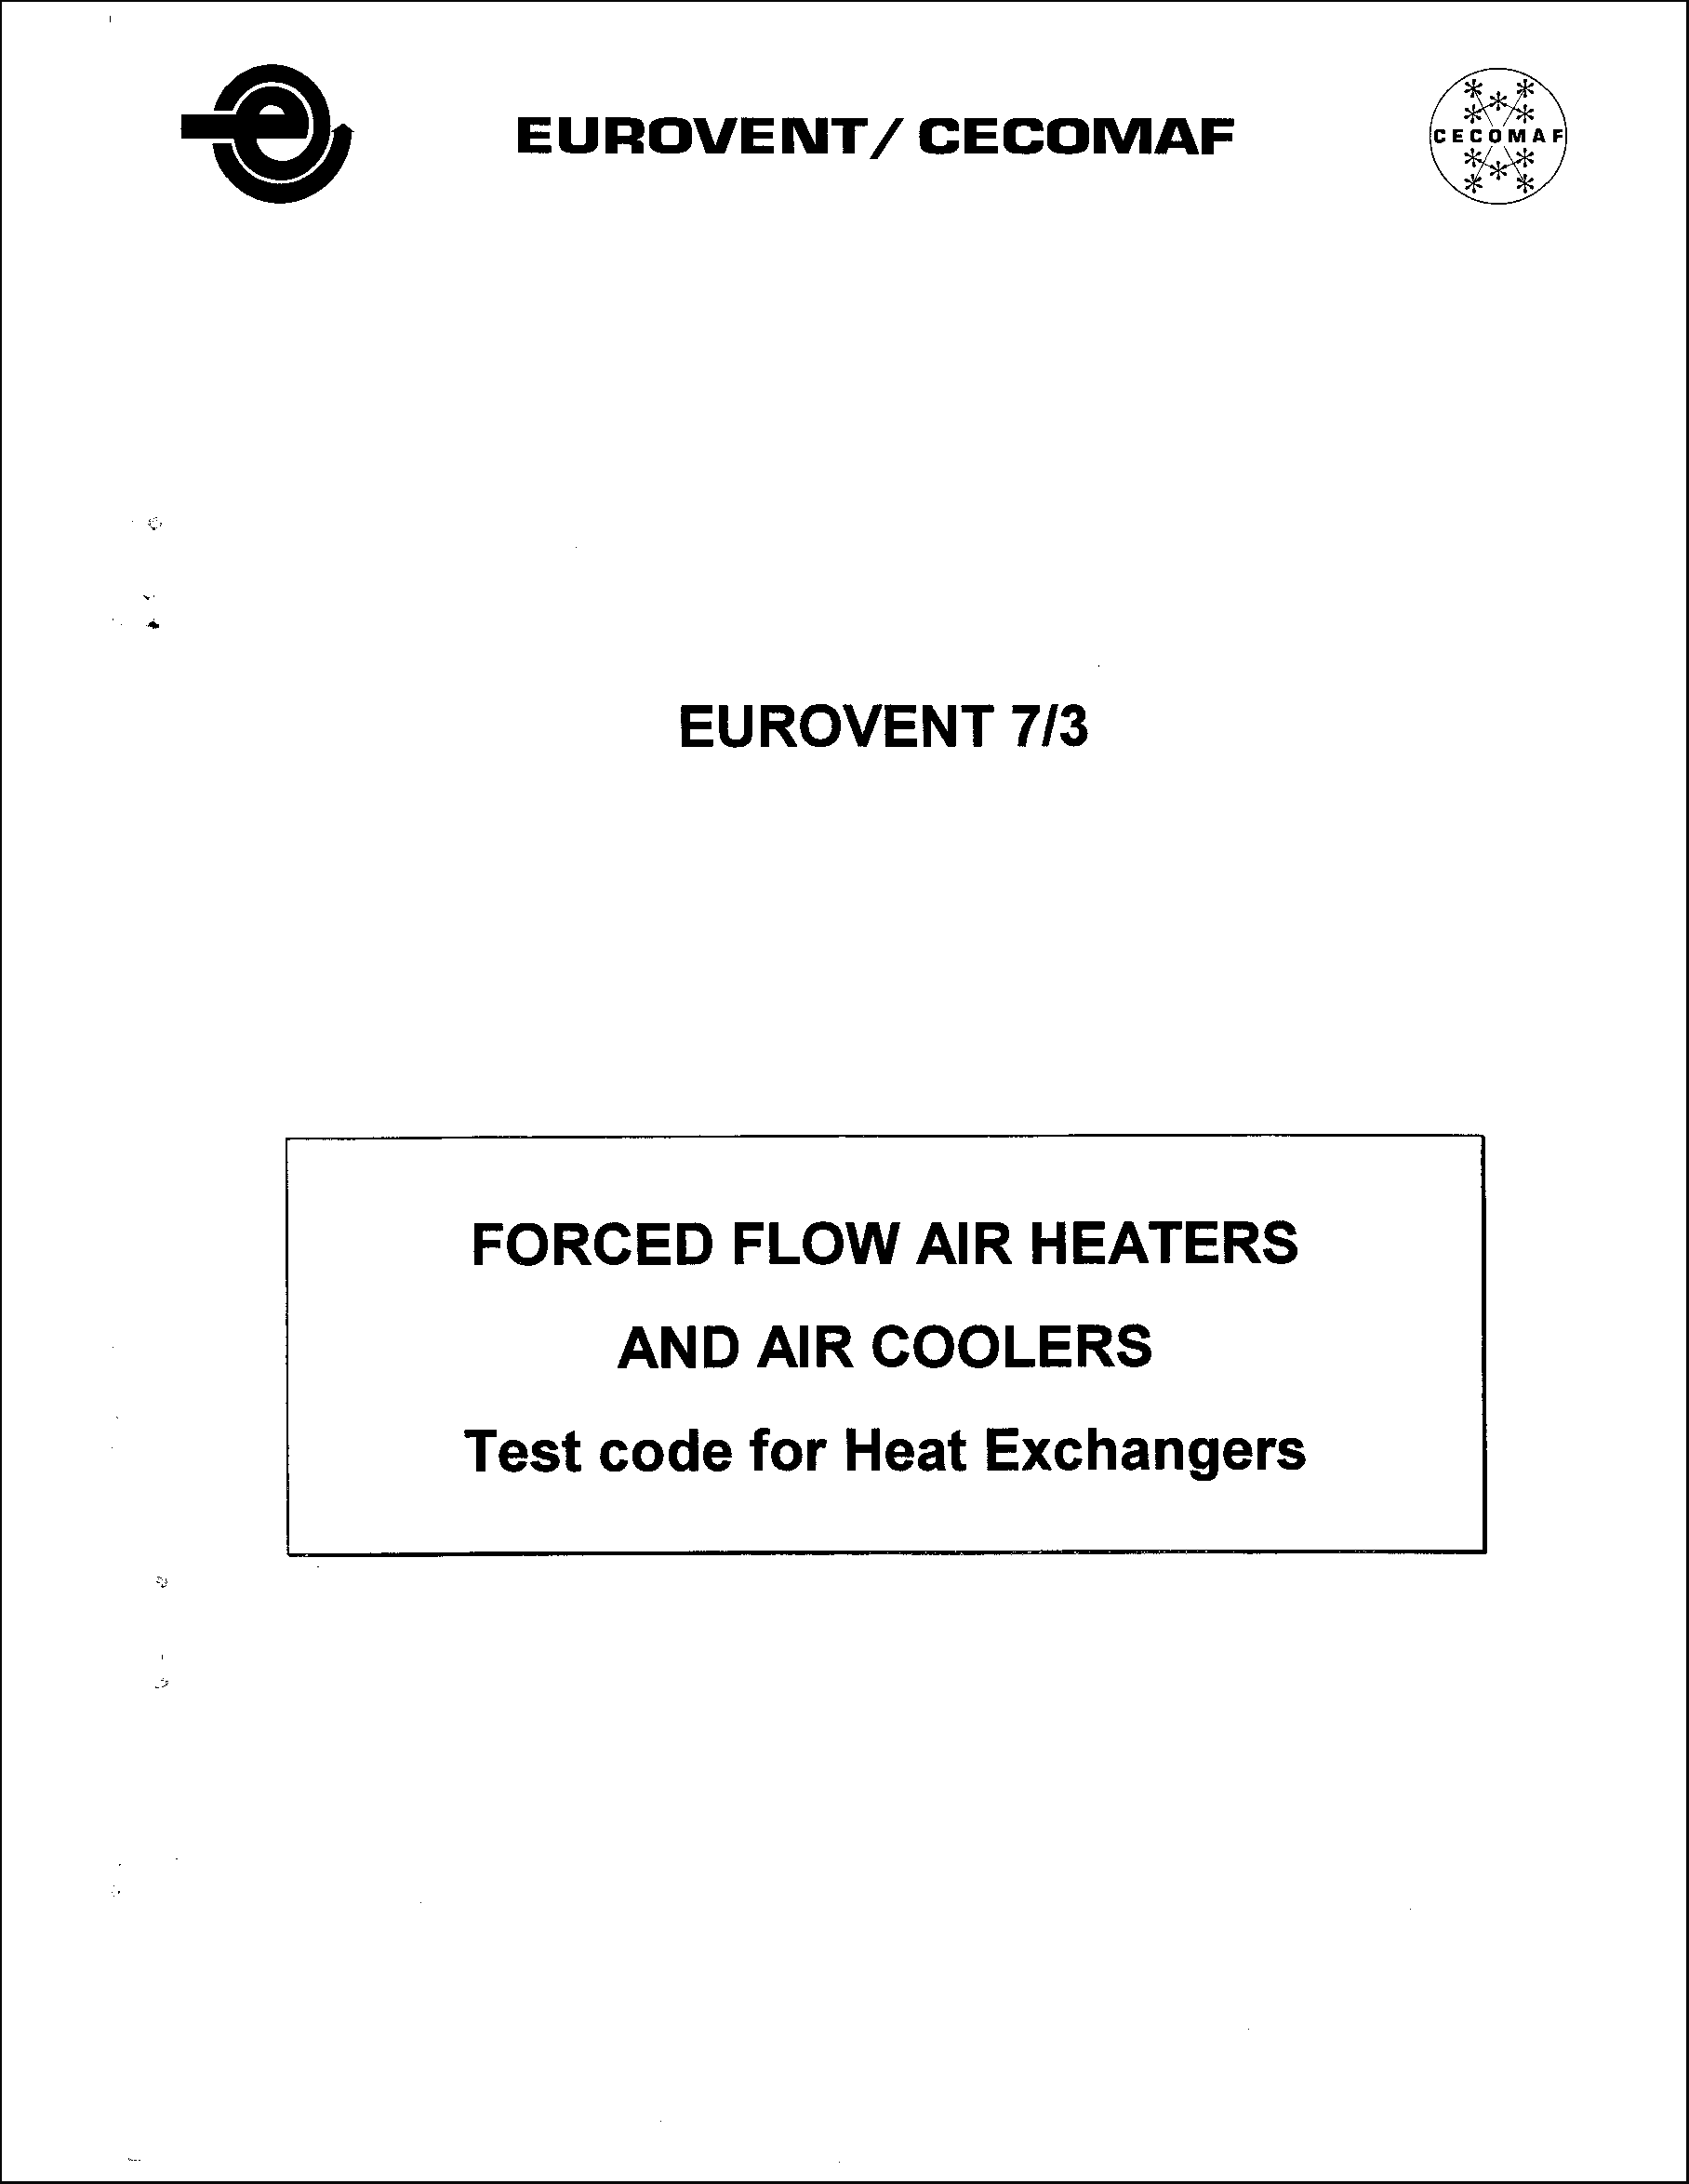 1985 - Forced flow air heaters and air coolers - Test code for heat exchangers